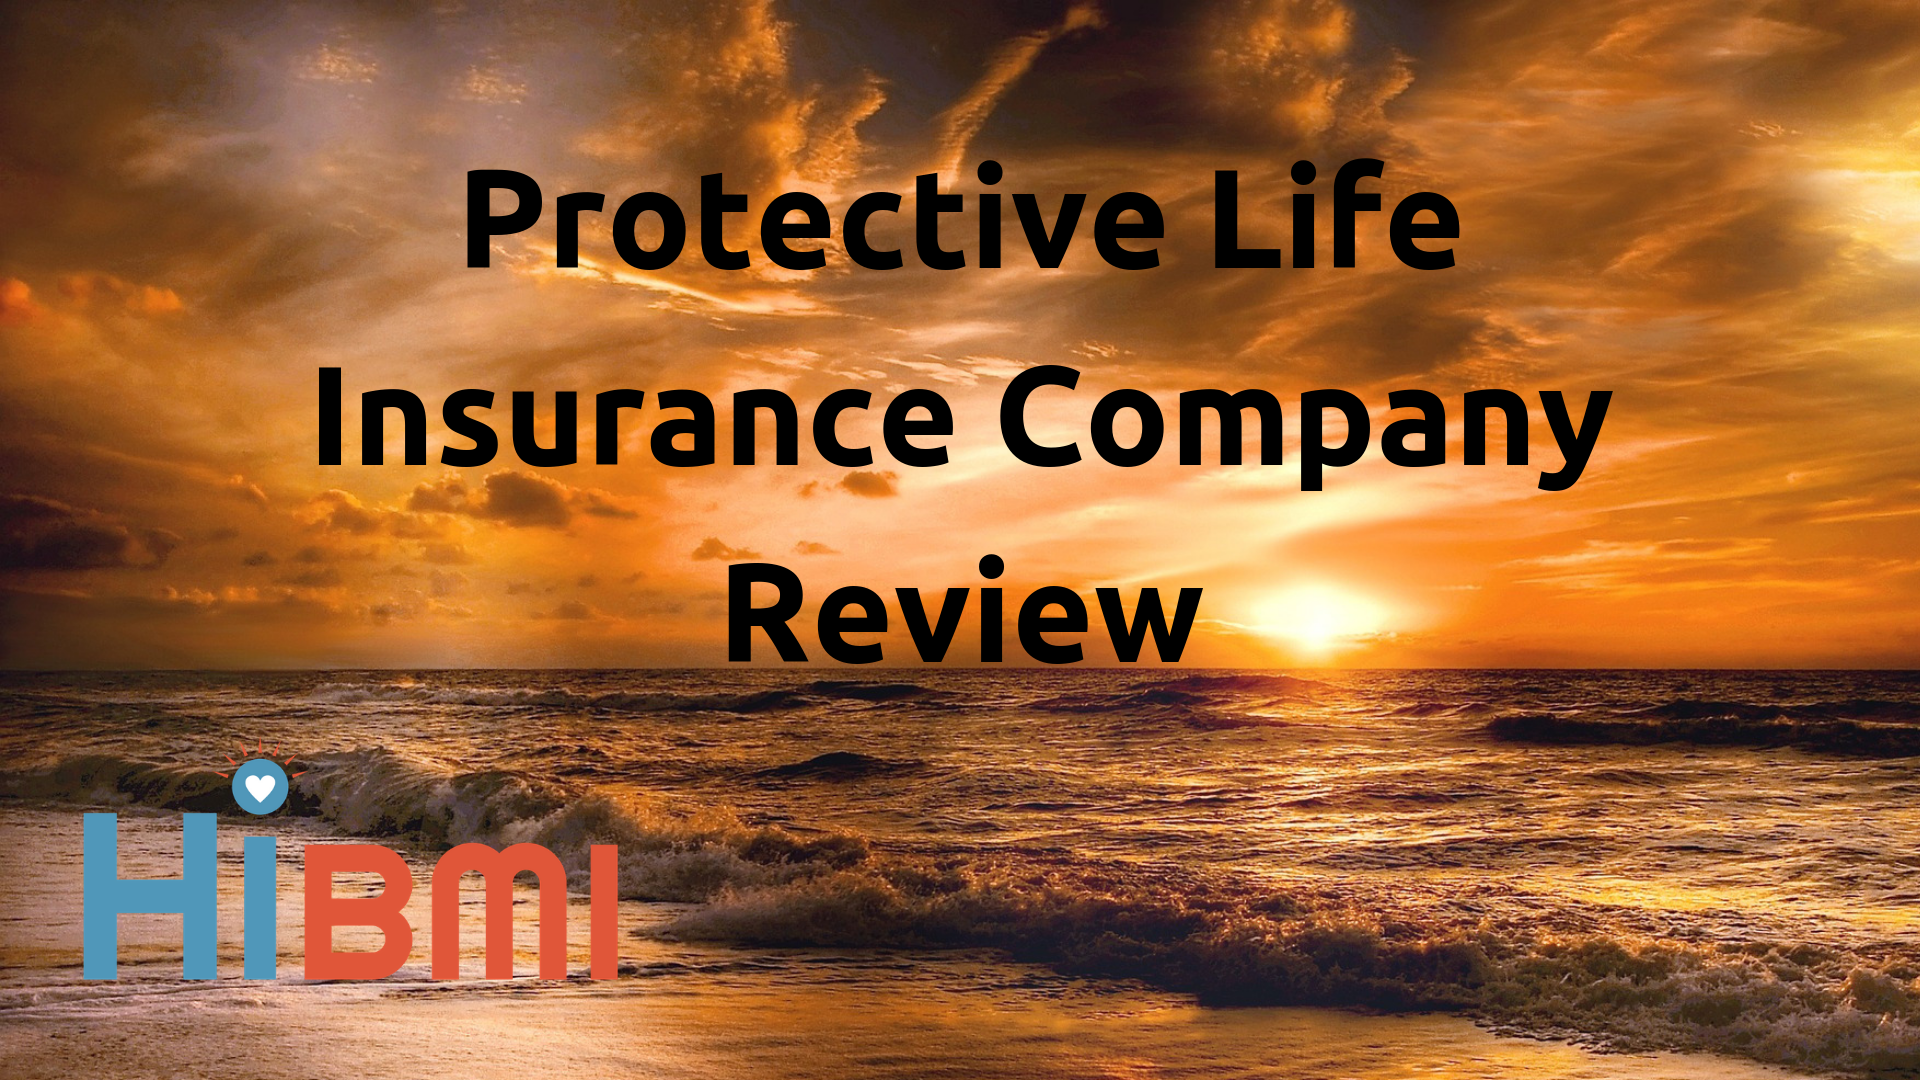 protective life insurance review, term life insurance, whole life insurance, universal life insurance